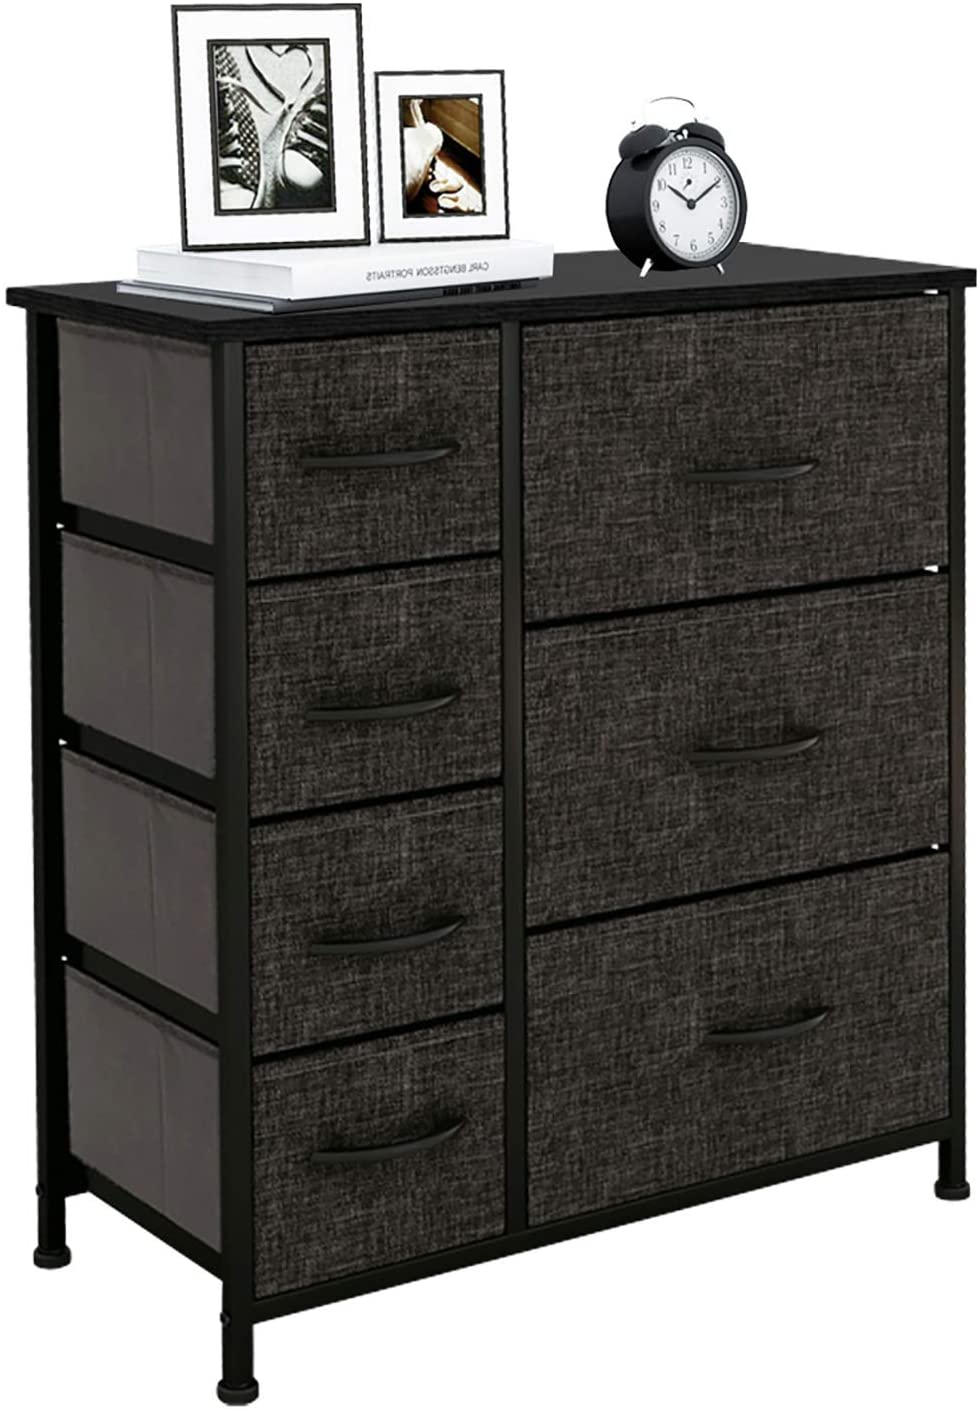 High Dresser with 7 Drawers for Bedroom, Living Room, Closets & Nursery - Fabric Storage Tower, Organizer Unit with Sturdy Steel Frame, Easy Pull Fabric Bins, Wooden Top & Handles - Dark Grey/Black